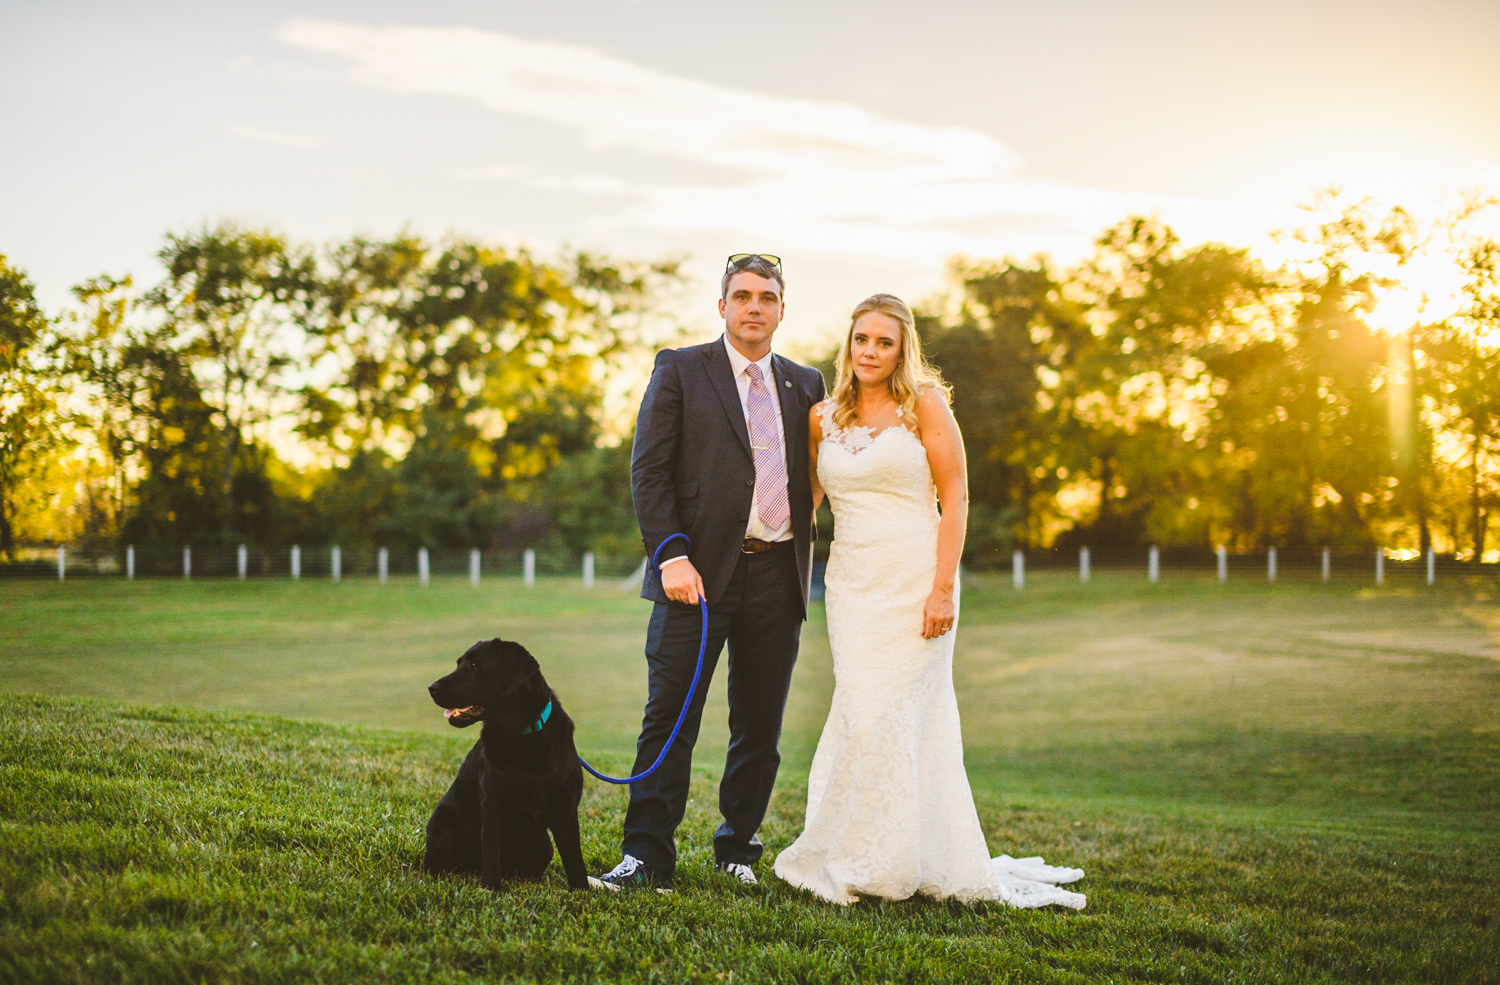 011 - the bride and groom and their dog pose for a wedding photo.jpg